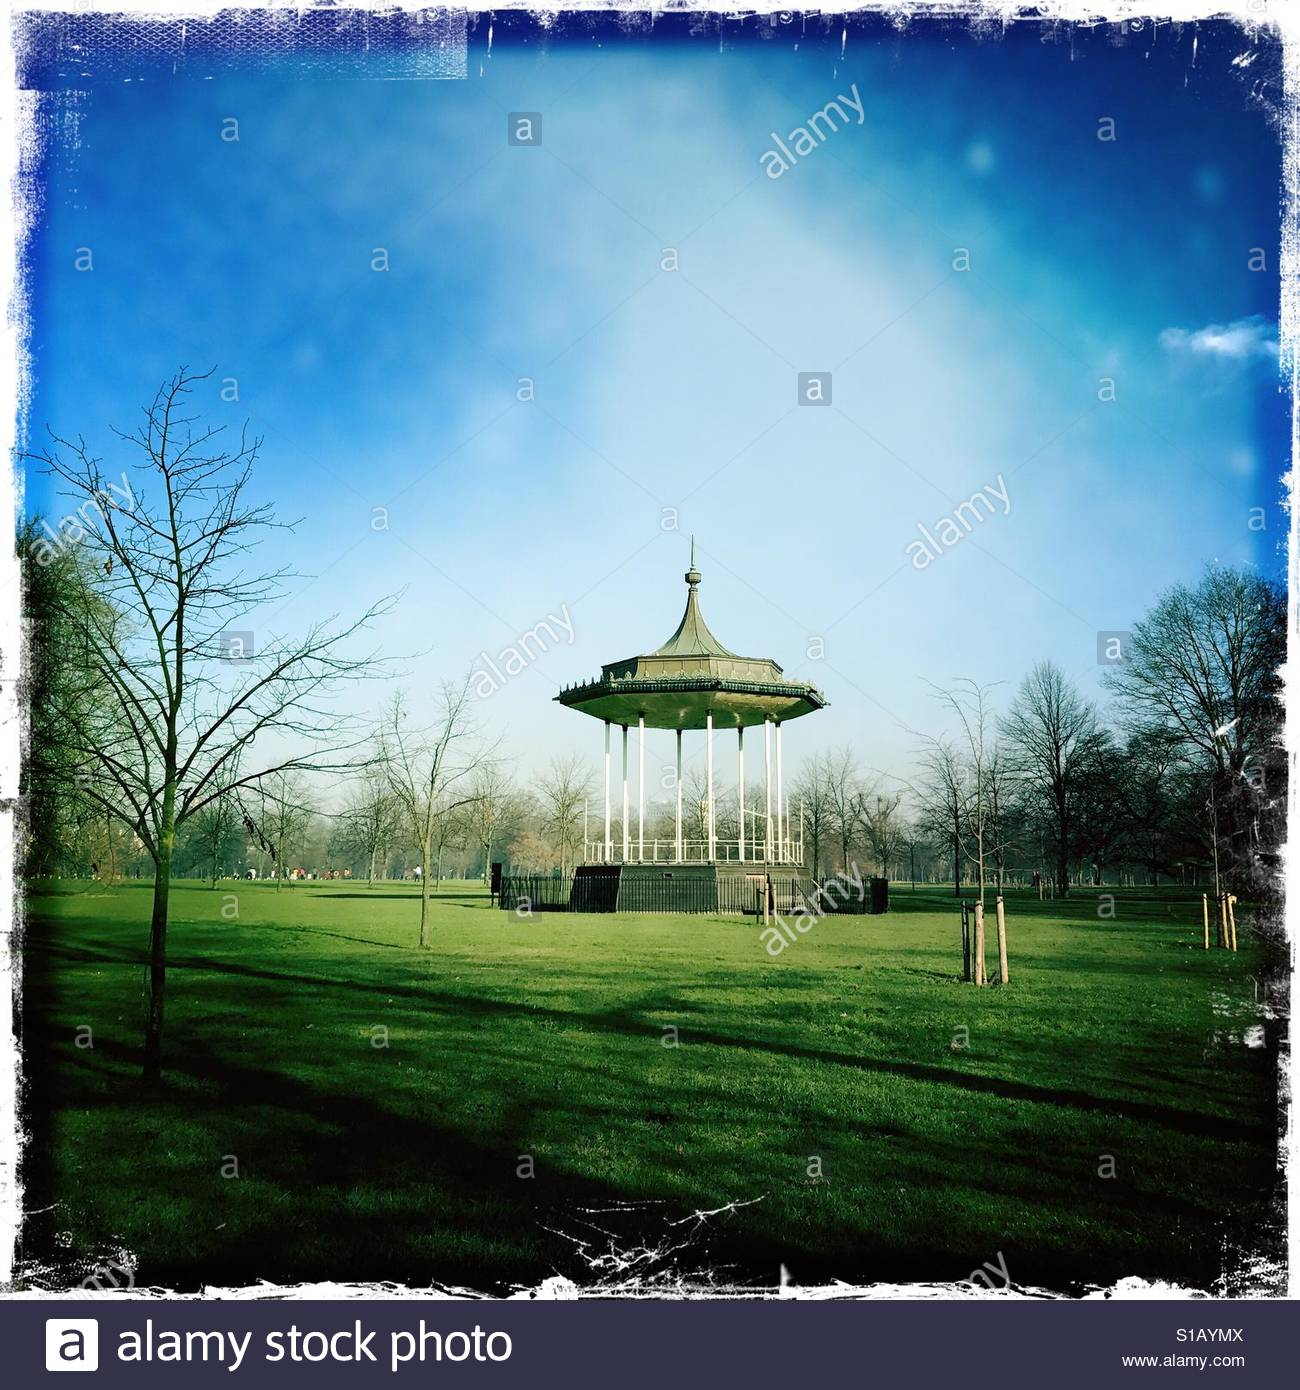 Bandstand in St James park - Stock Image